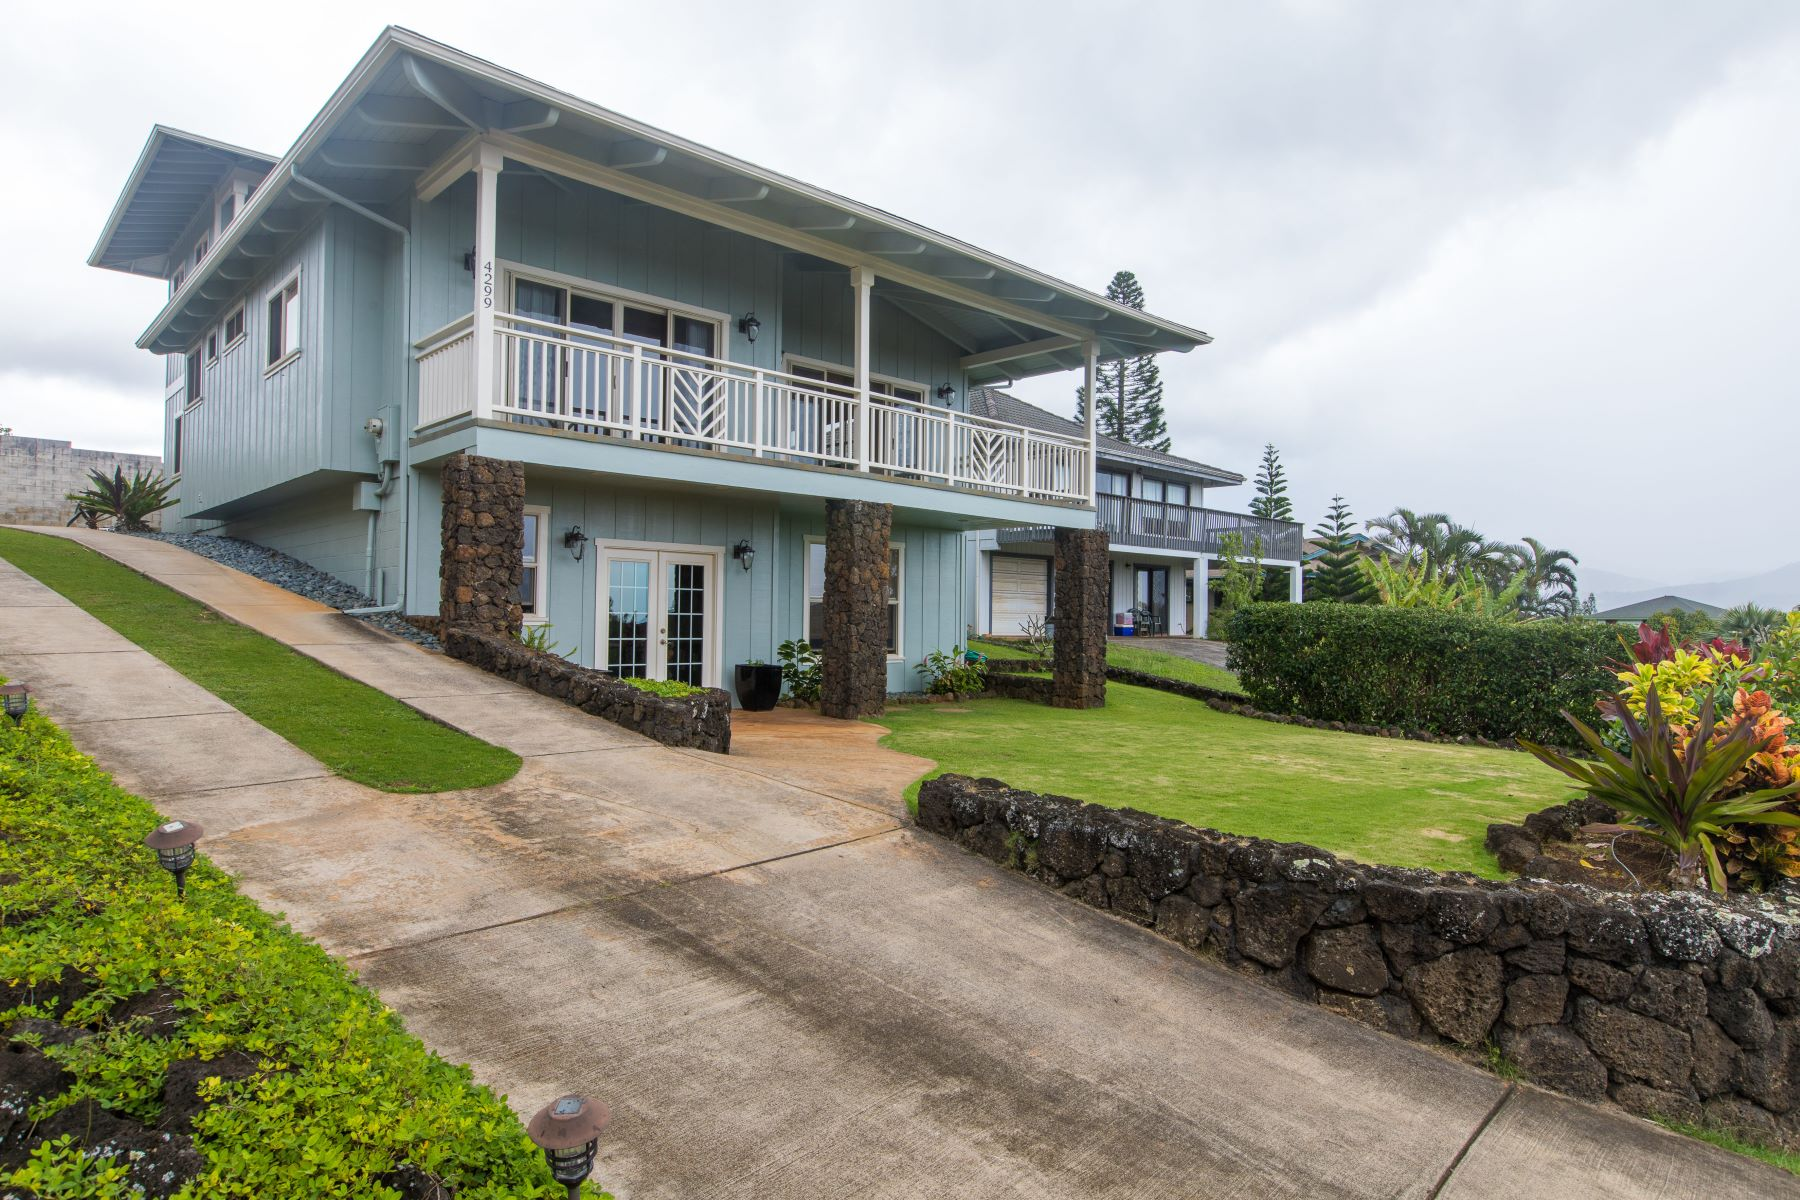 一戸建て のために 売買 アット Stunning Custom 4 Bedroom, 3 Bath Home Near Top of Beautiful Kai Ikena Hillside 4299 Kai Ikena Drive Kalaheo, ハワイ 96741 アメリカ合衆国